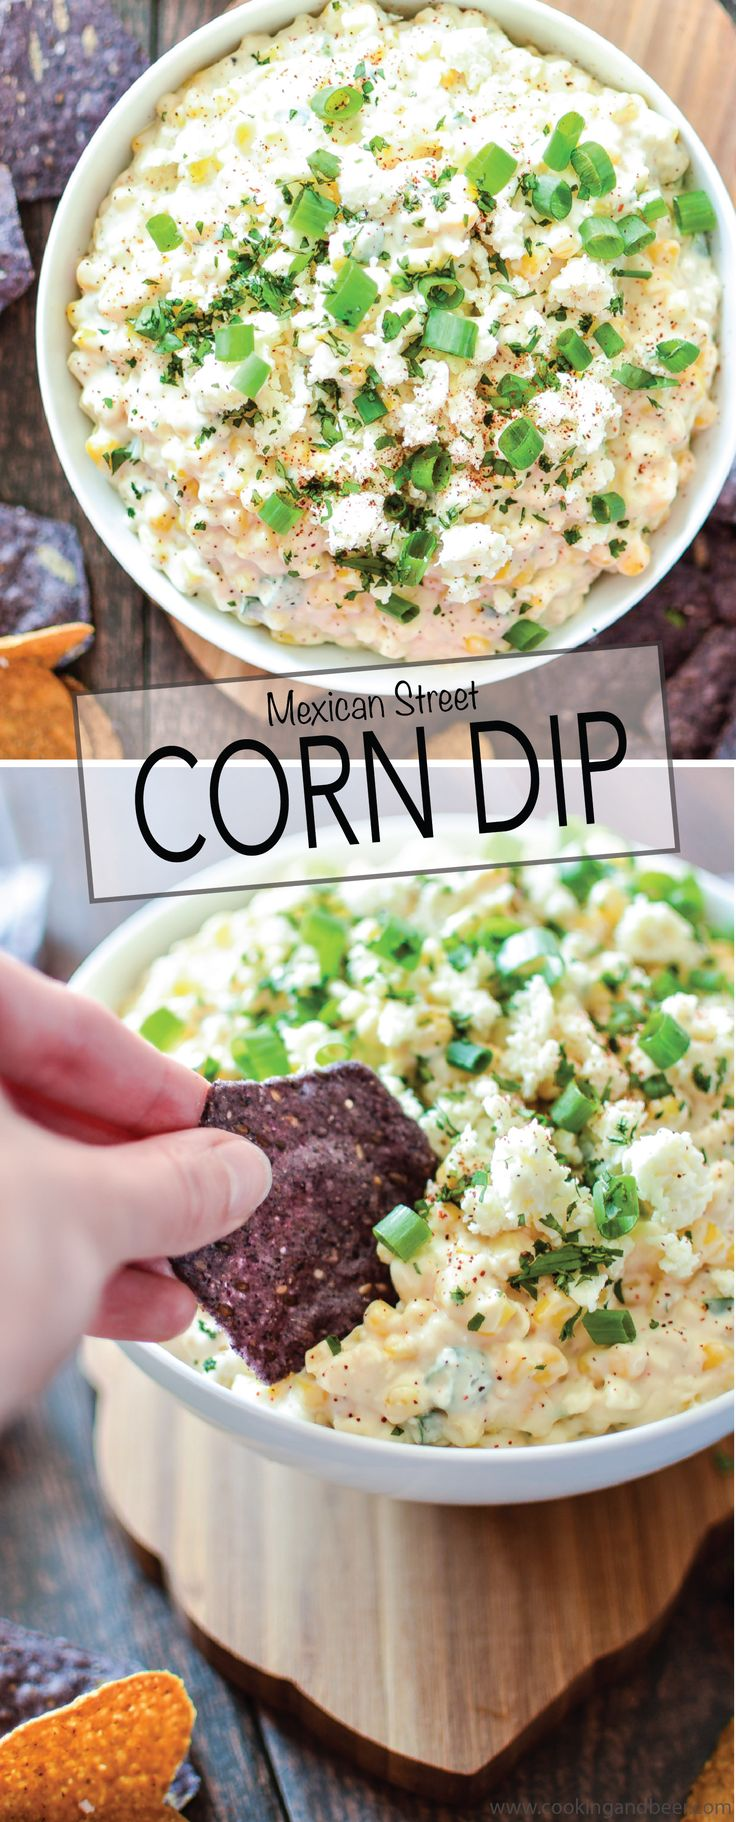 Mexican Street Corn Dip is the perfect appetizer to serve at your Cinco de Mayo party!